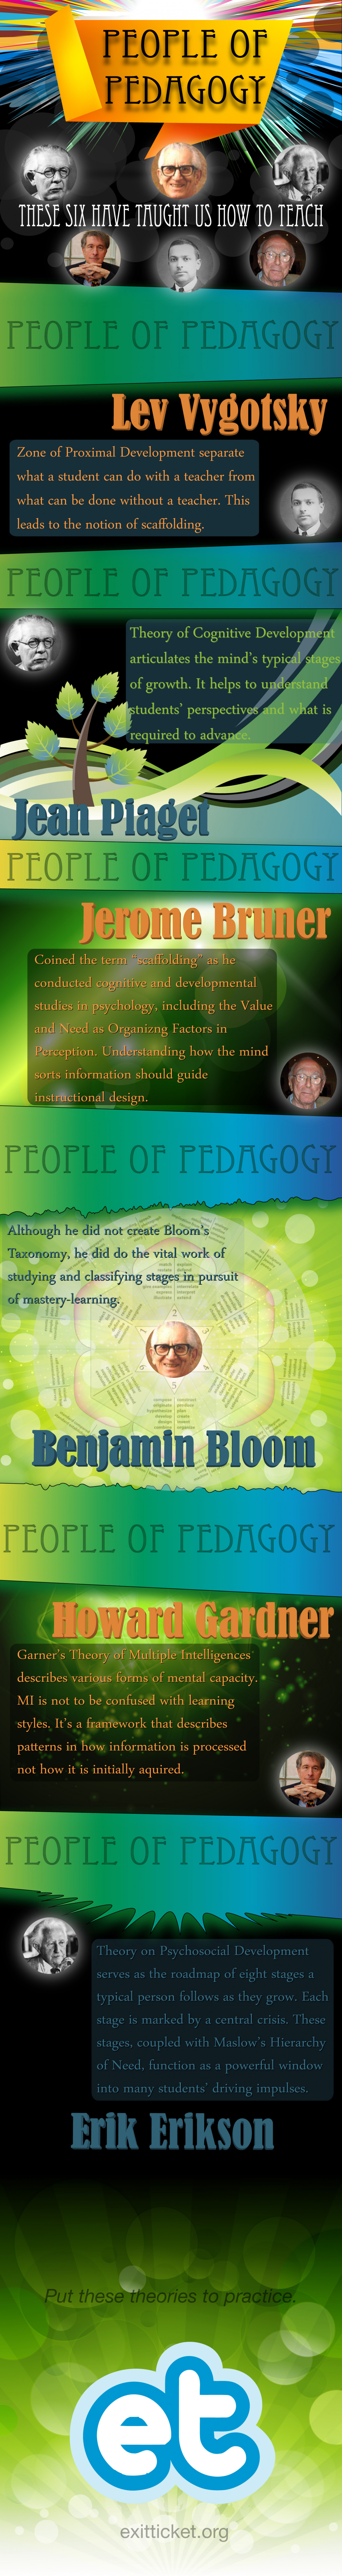 People of Pedagogy Infographic